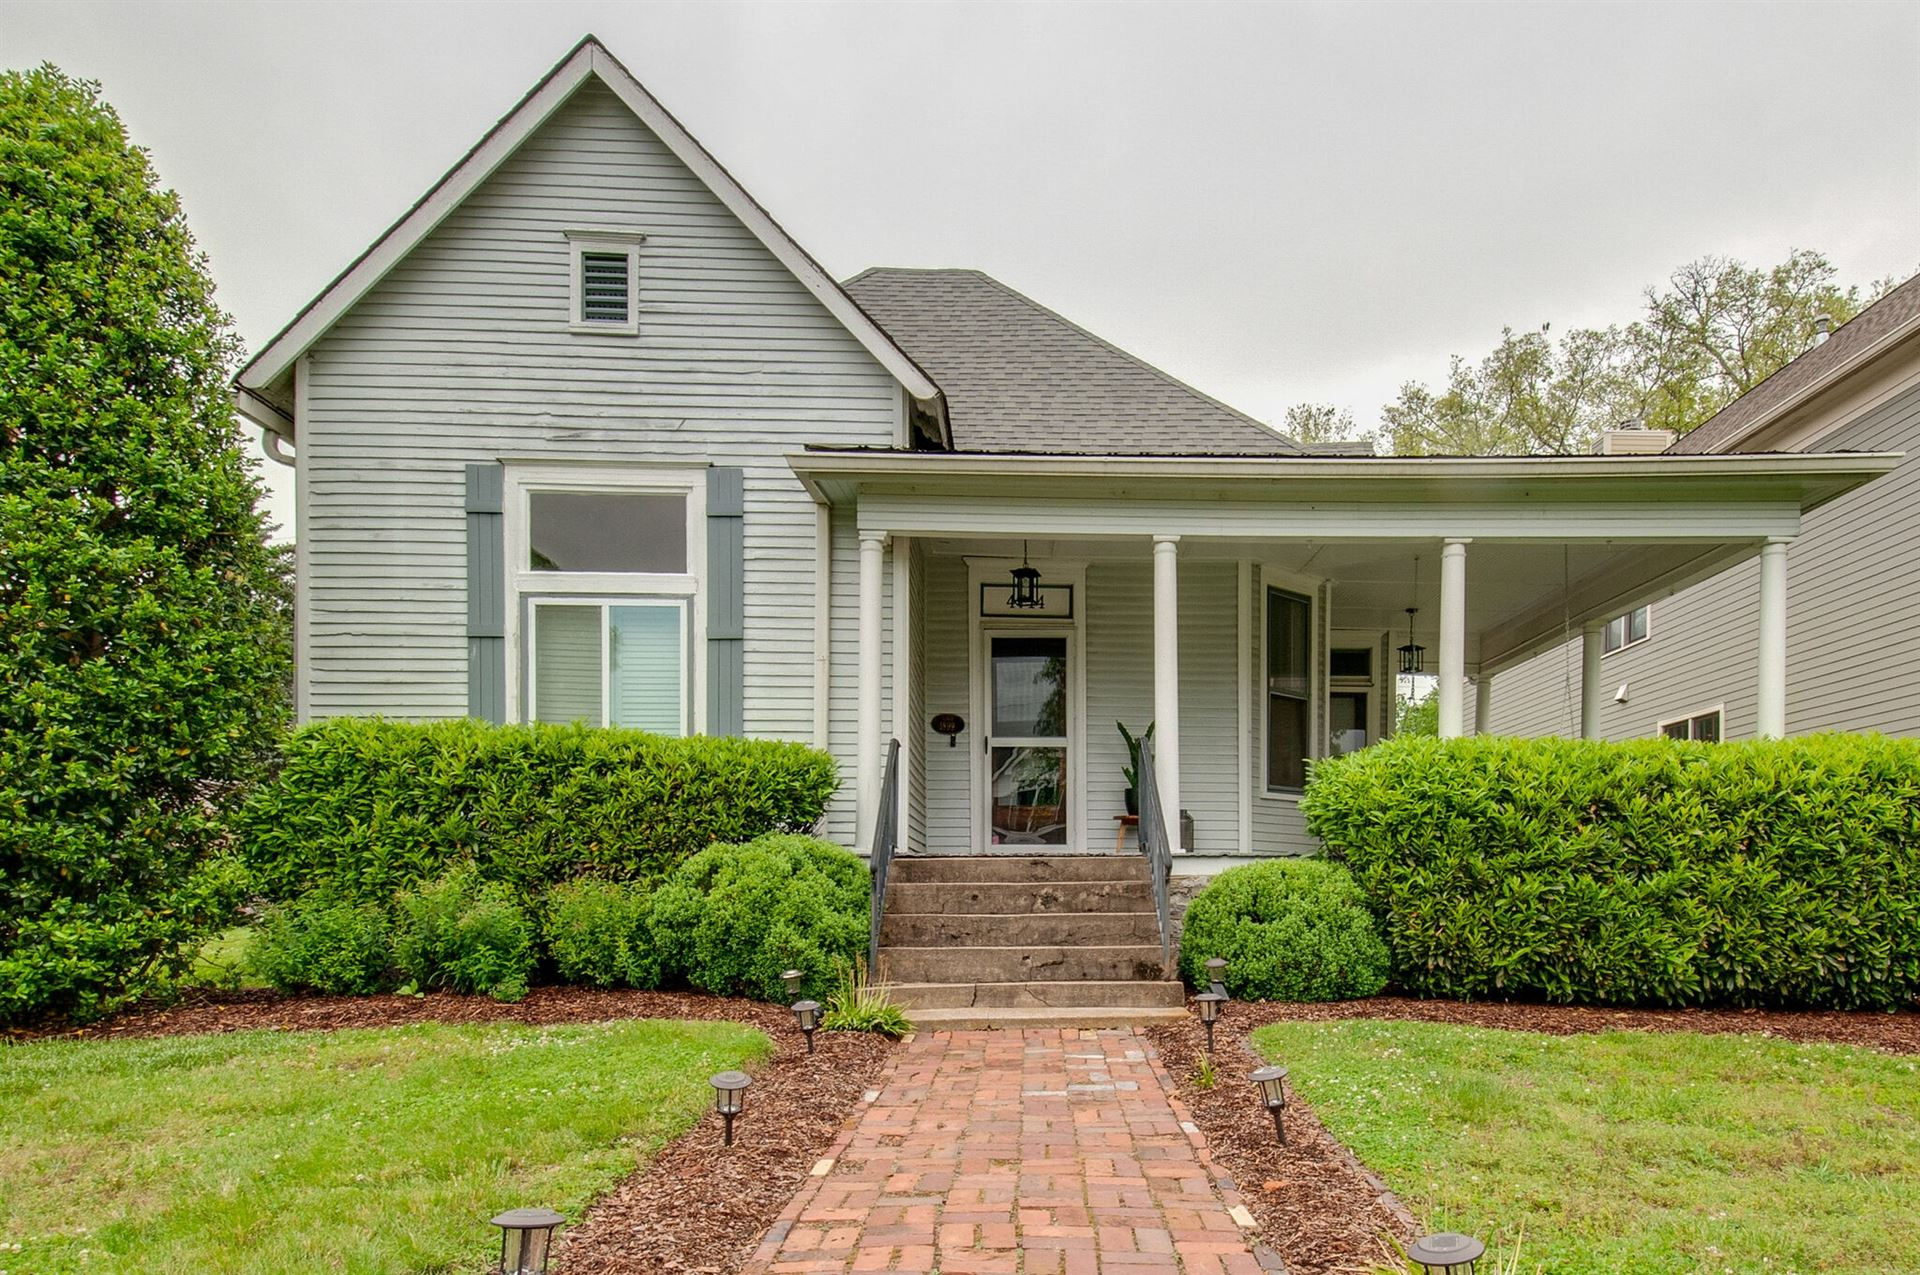 4714 Nevada Ave, Nashville, TN 37209 - MLS#: 2253148